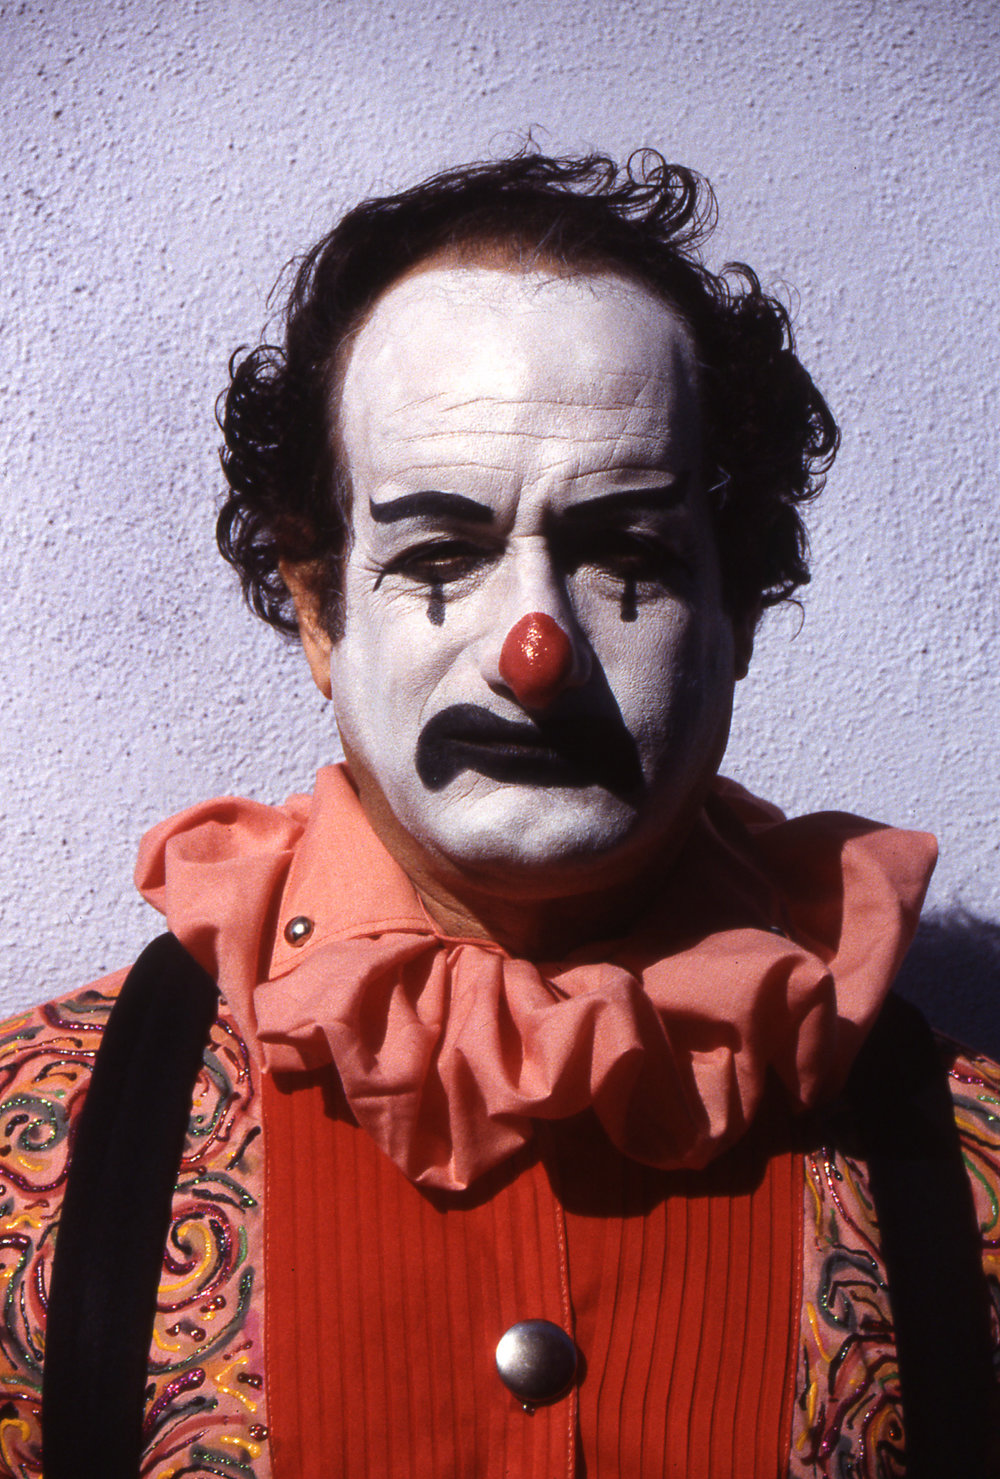 Stephen Paymer clown.jpg